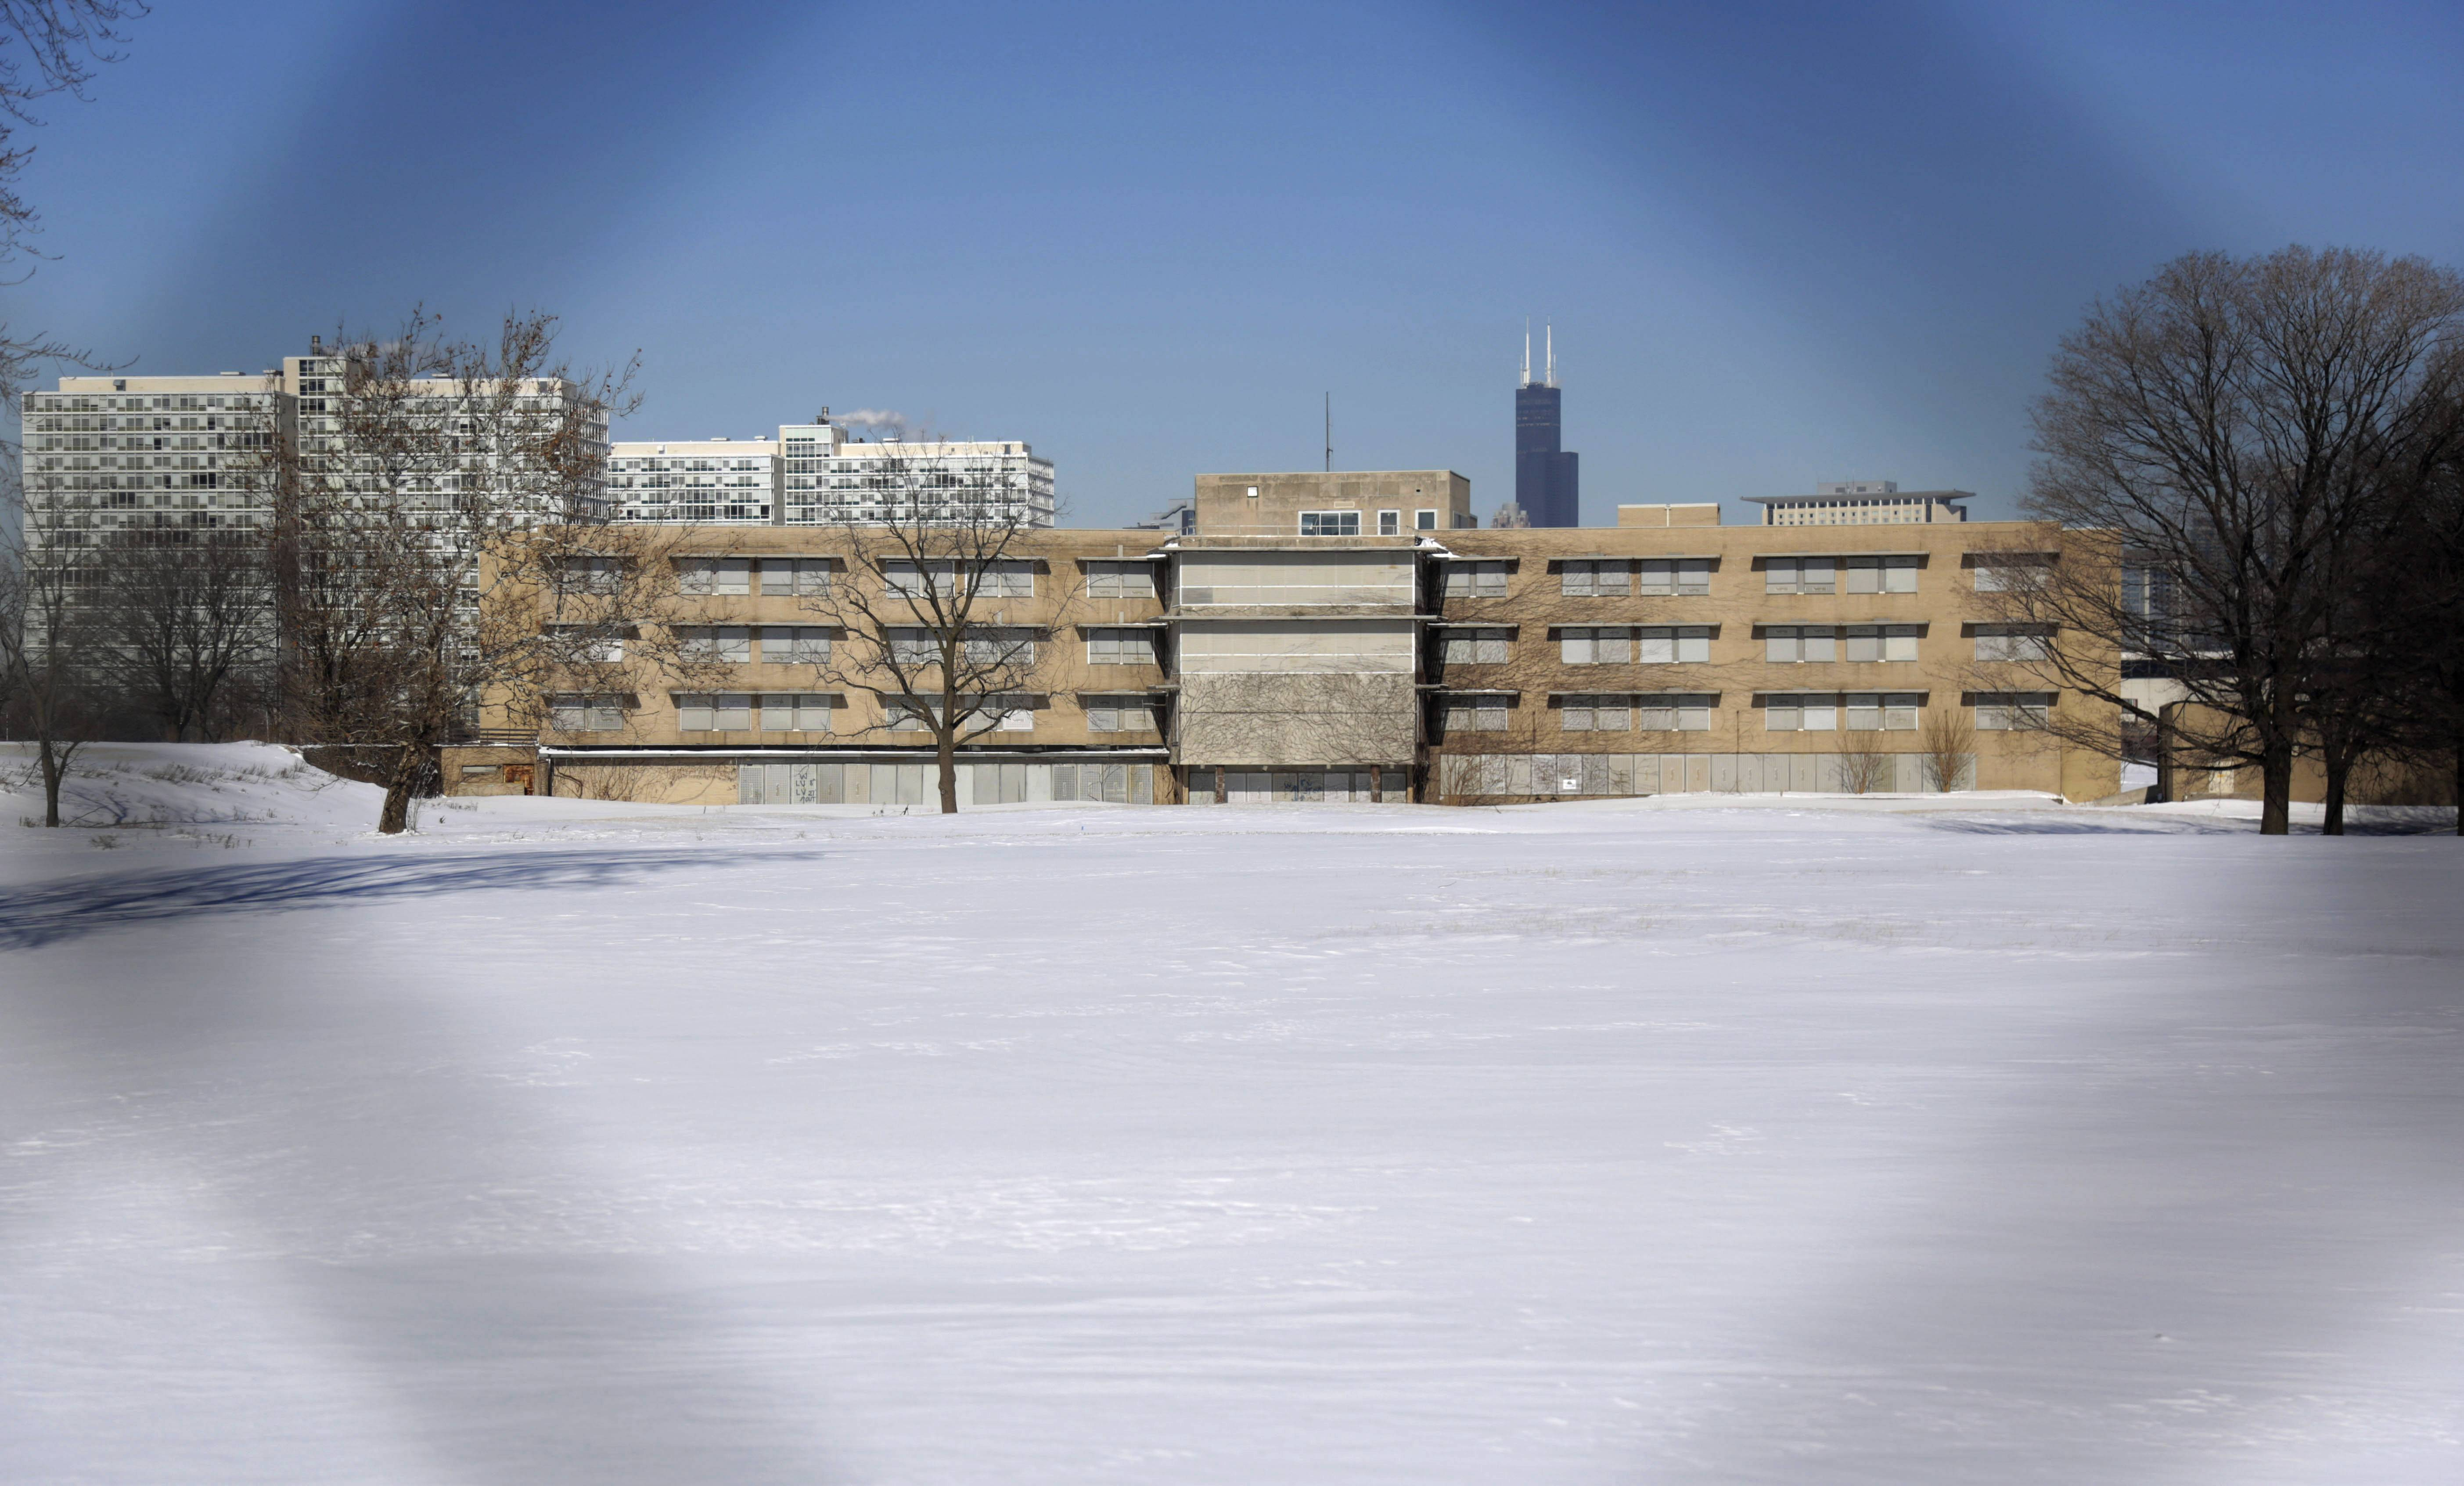 The area that once housed Michael Reese Hospital in the Bronzeville neighborhood is a potential site for a Barack Obama presidential library. Bronzeville is the city's historic center of black culture, business and politics.